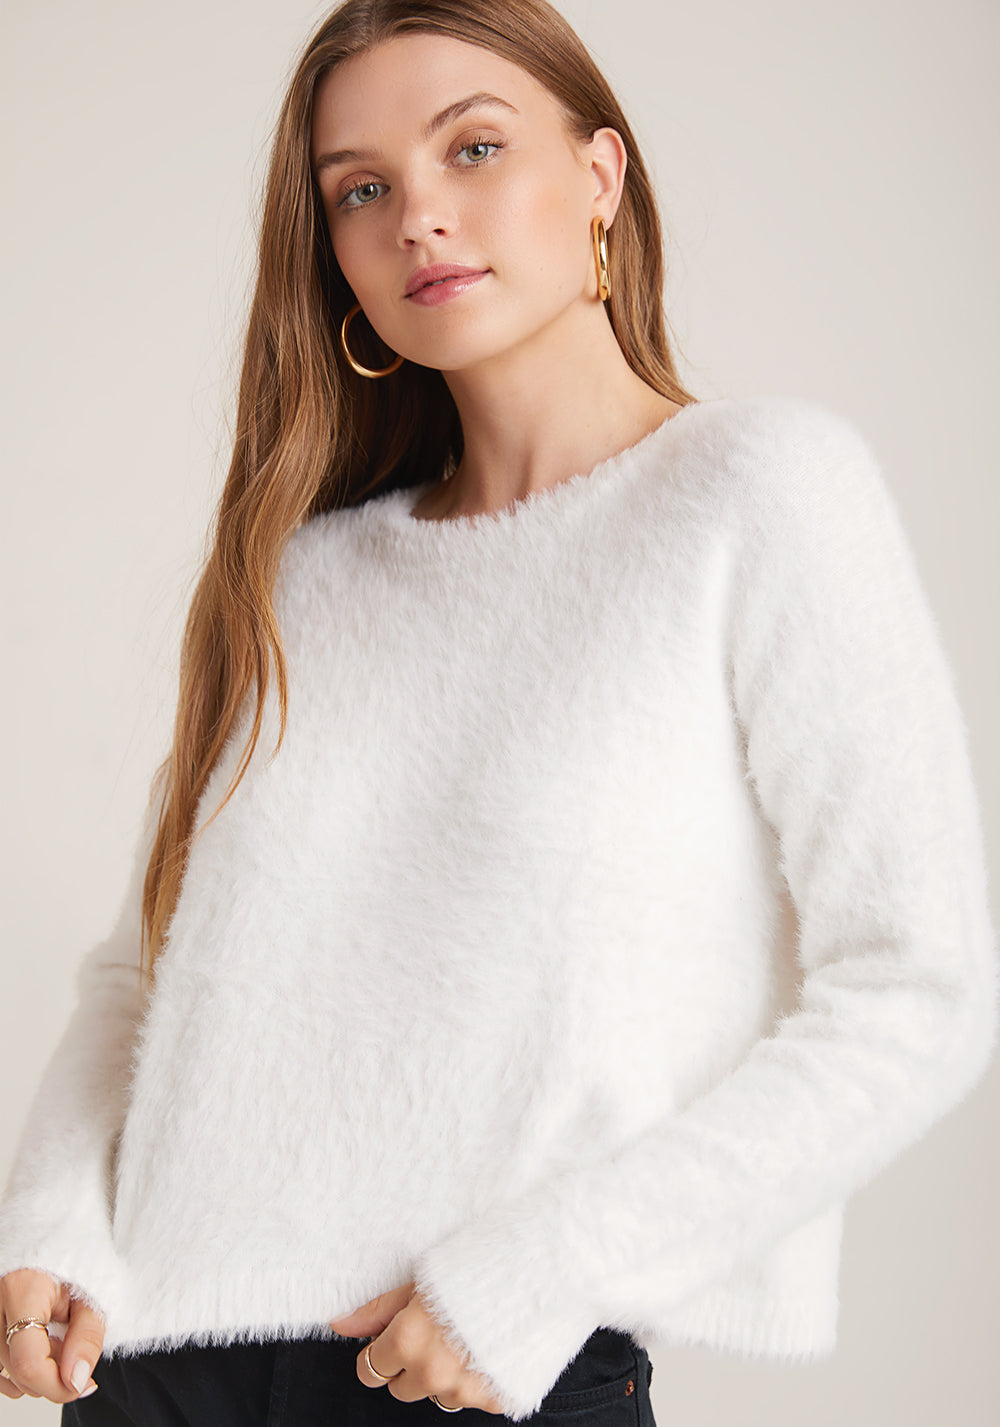 bella dahl Best selling sweater updated this year in a winter white! This super soft fuzzy sweater has a slouchy boxy shape. We love it with jeans and booties or sneakers for the perfect Fall outfit. The Fuzzy Slouchy Sweater in Winter White